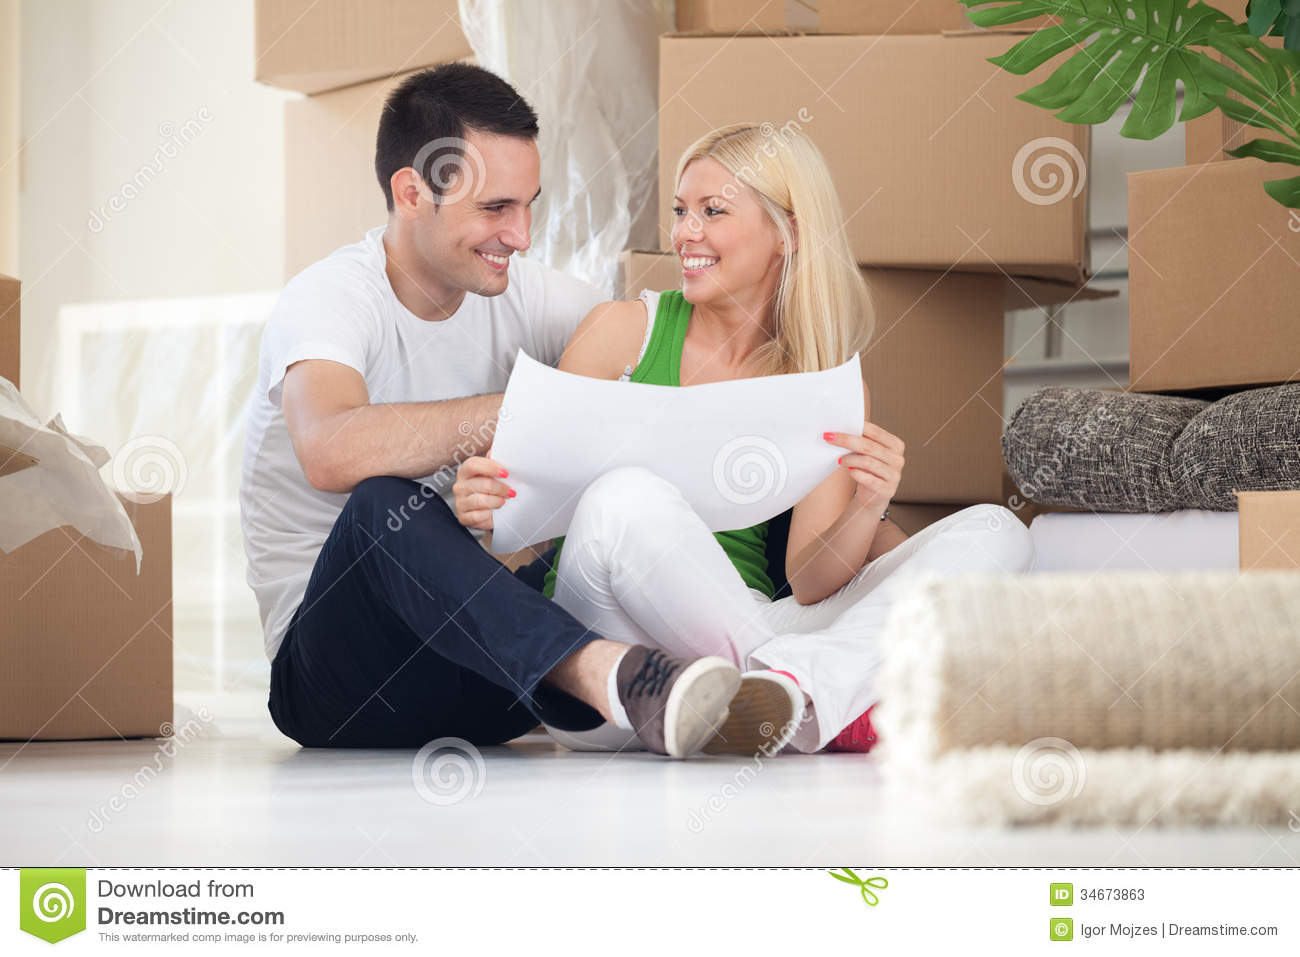 Couple Sitting On Floor Looking At House Plans Stock Photos    Couple sitting on floor looking at house plans